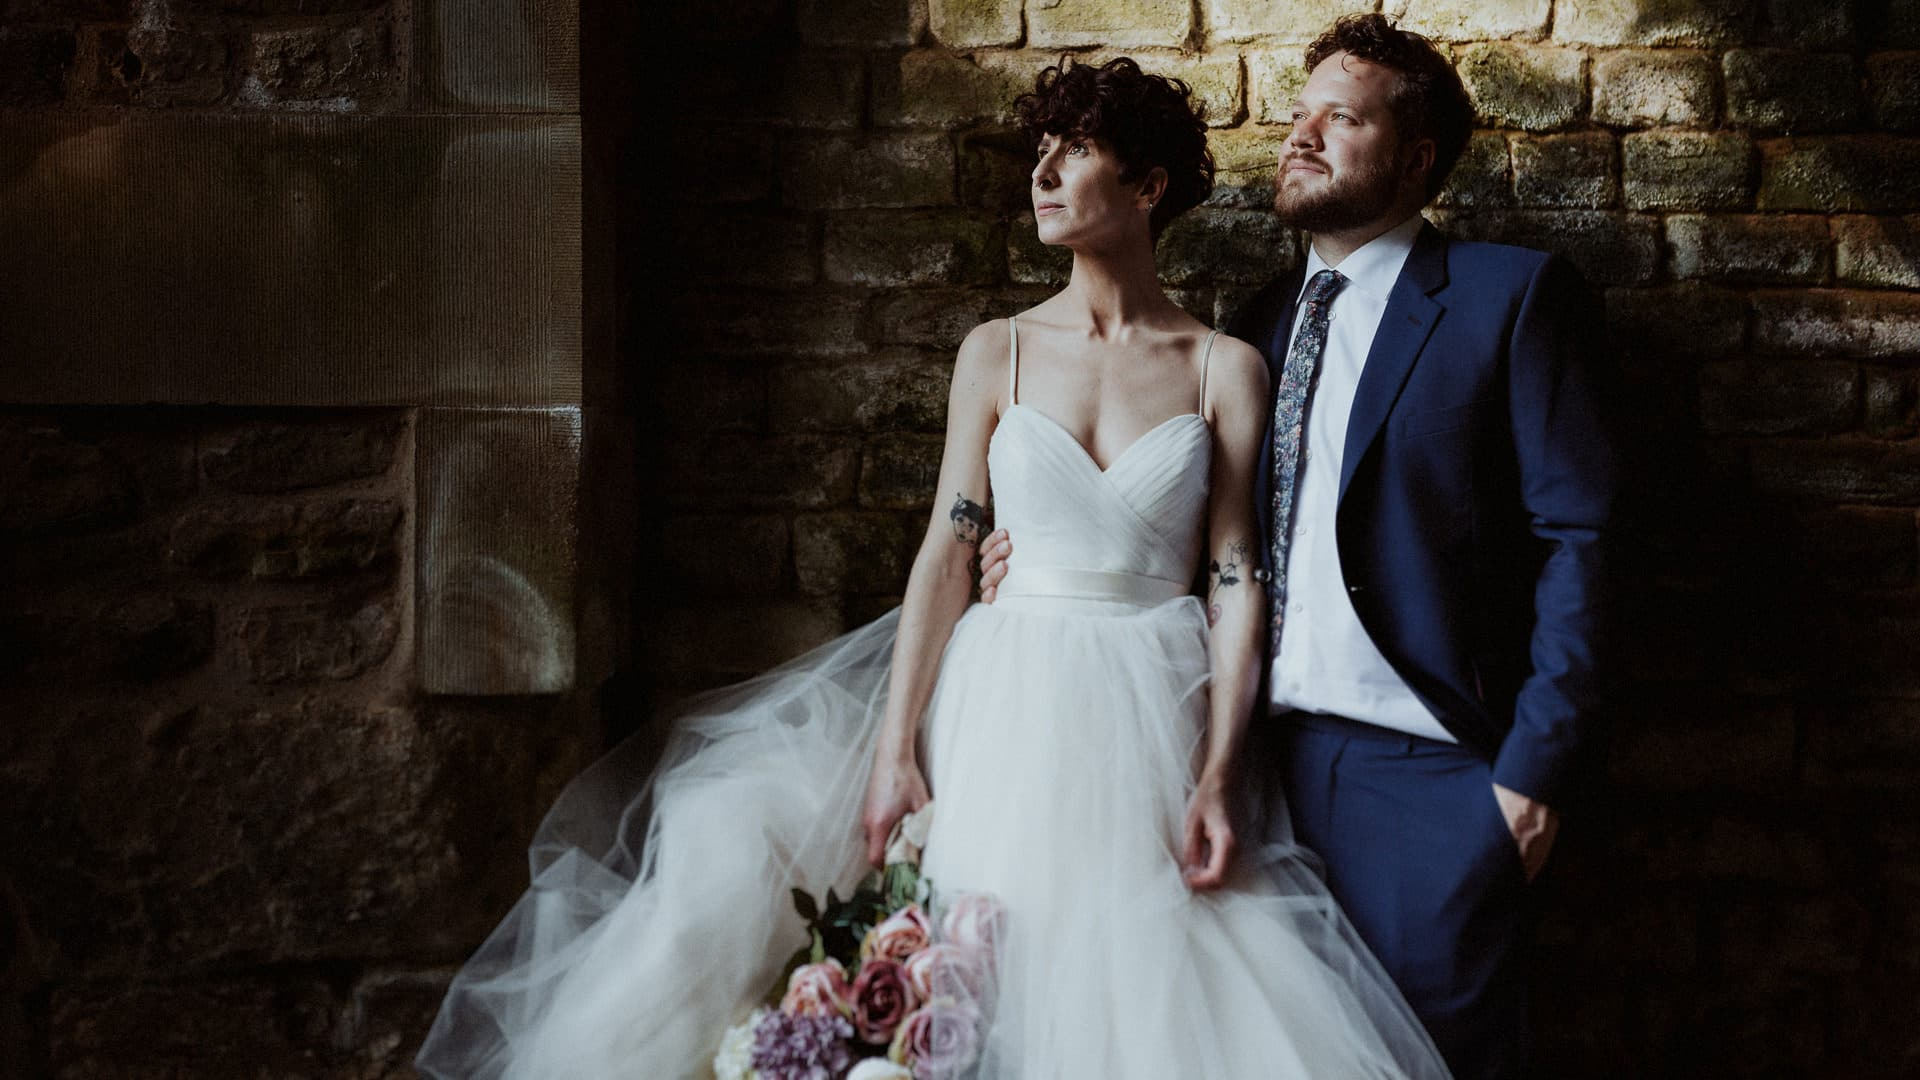 Manchester Wedding Photographer Feminist Wedding Wentworth Castle Gardens 0129